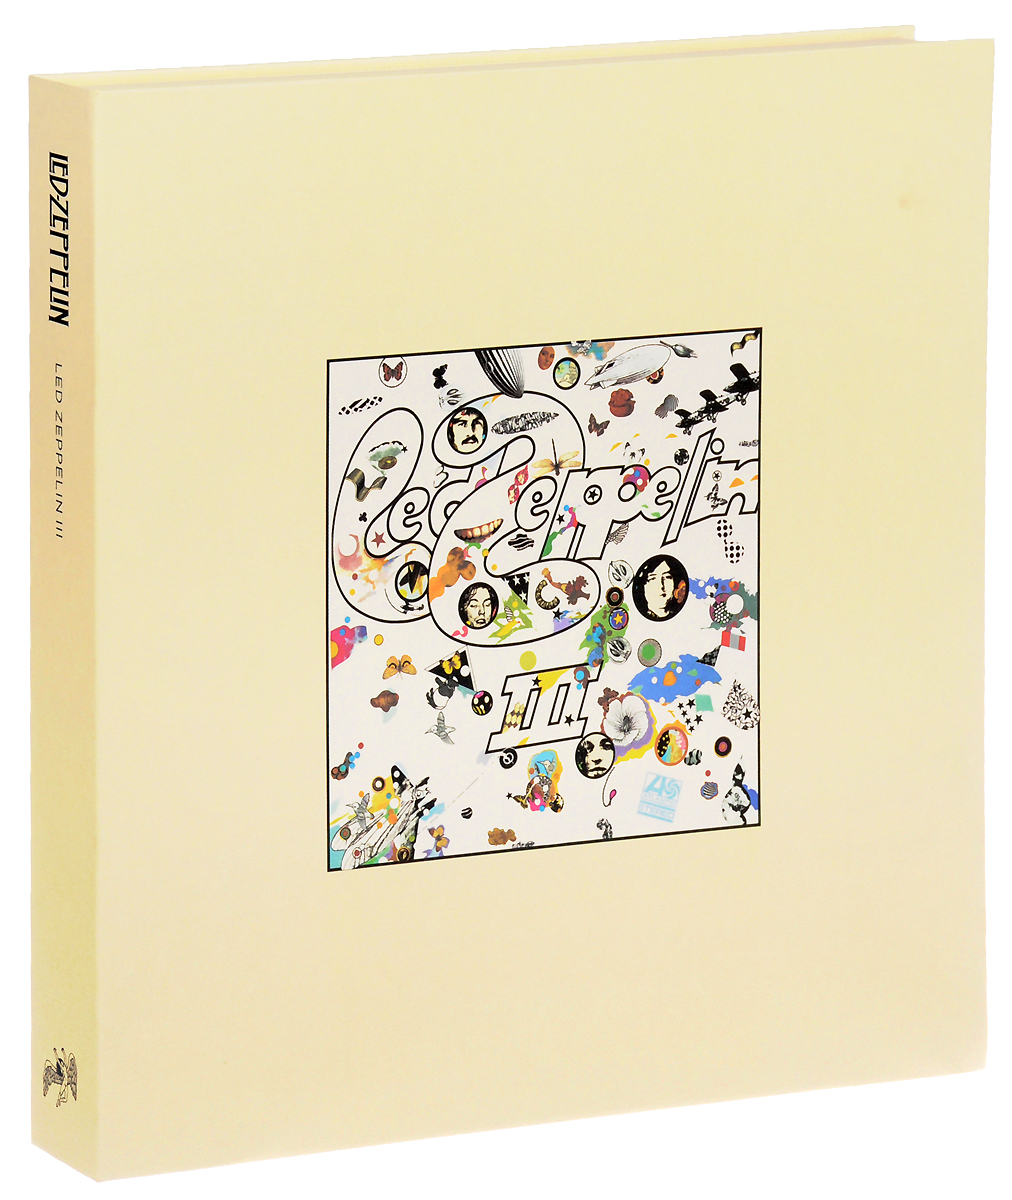 Led Zeppelin Led Zeppelin. Led Zeppelin III. Super Deluxe Edition (2 LP + 2 CD) cd led zeppelin iv deluxe cd edition